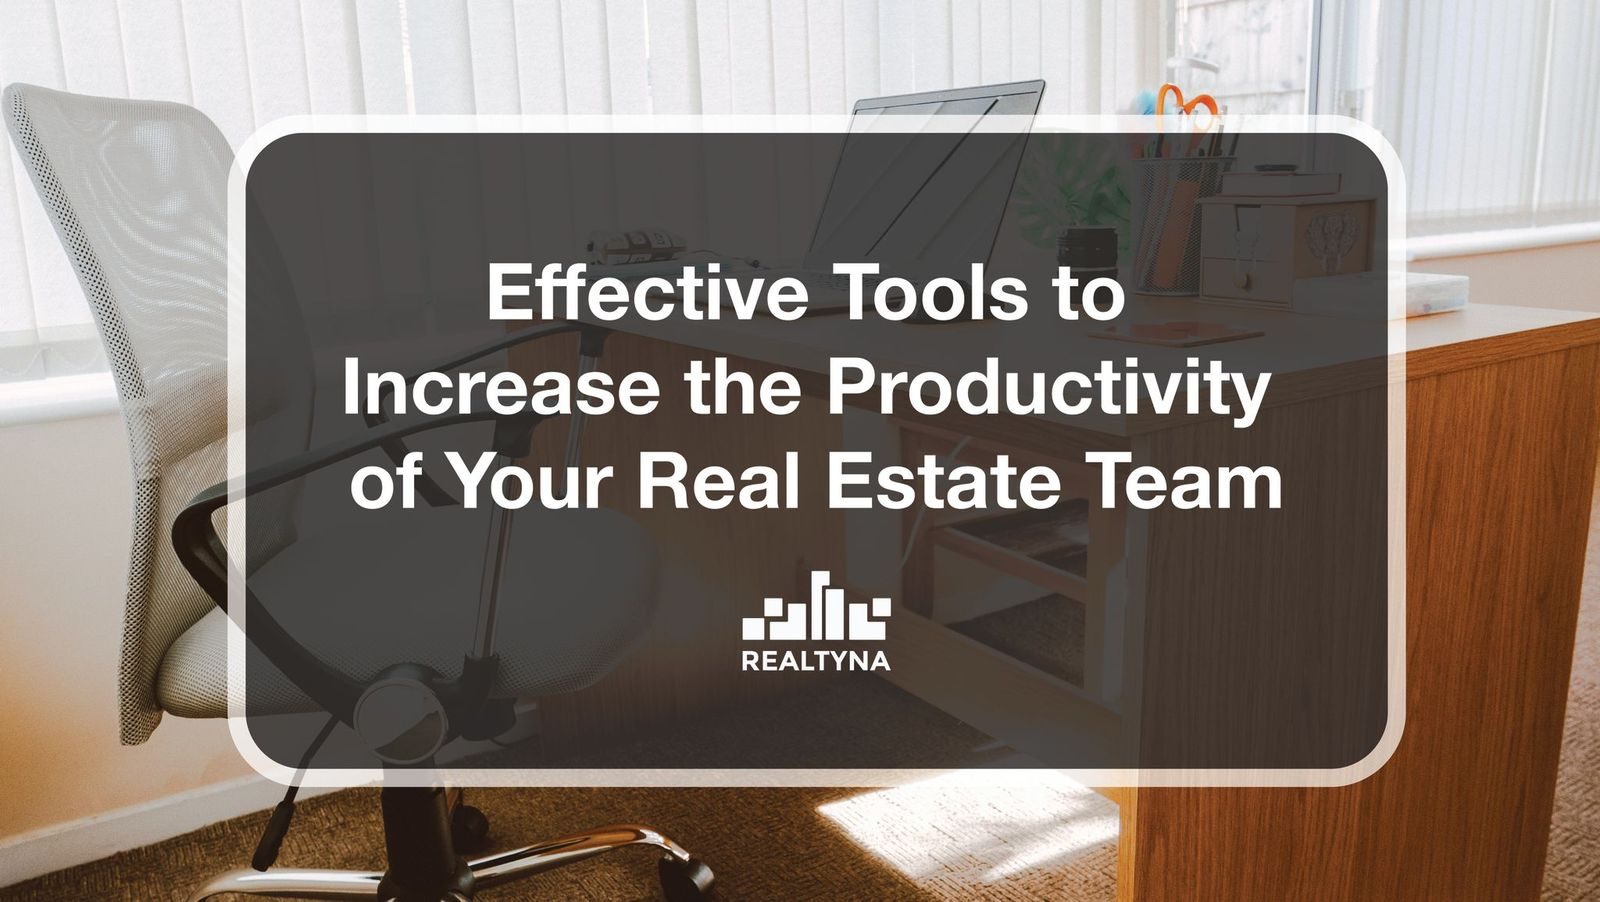 Effective Tools to Increase the Productivity of Your Real Estate Team